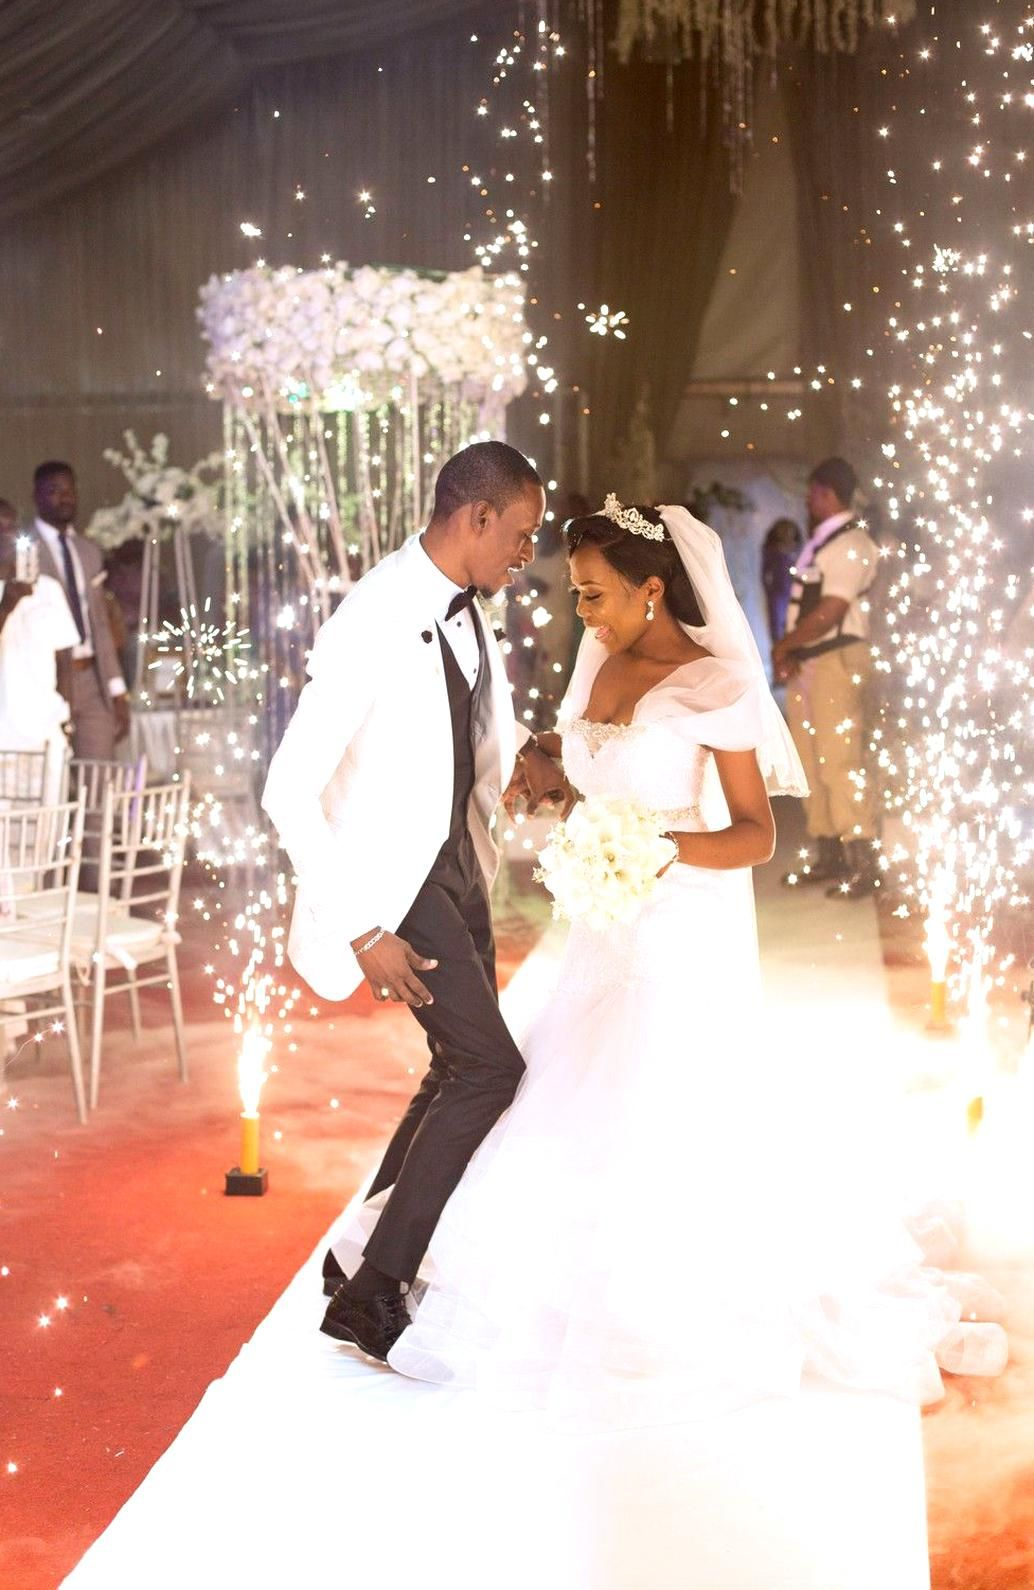 From Christian wedding ceremony songs to first dance songs